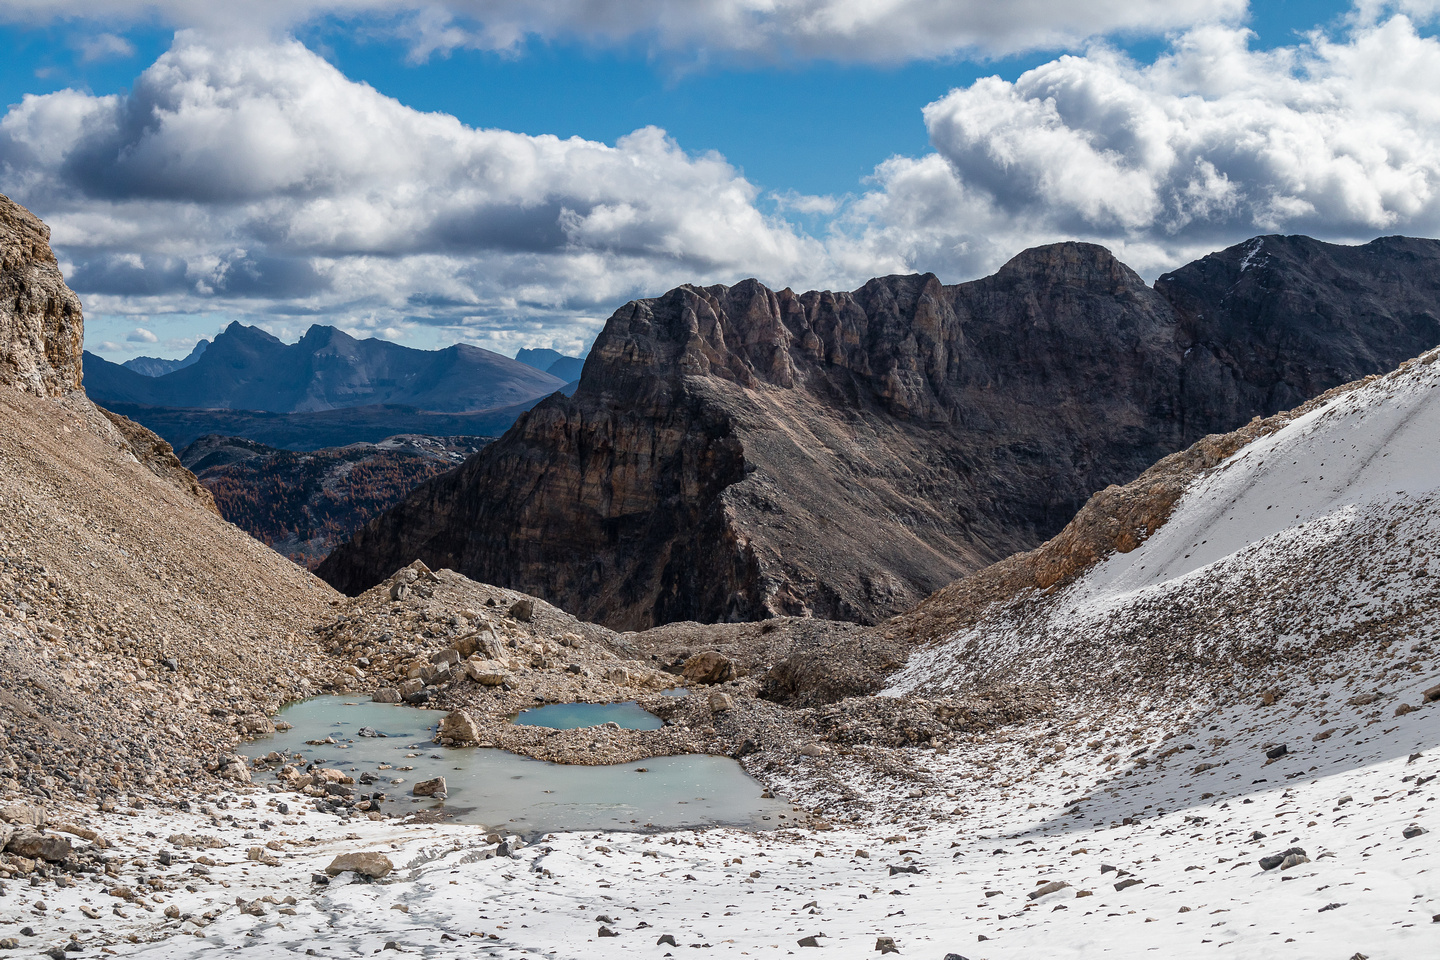 Views back over the glacial tarns to the unnamed peak east of Mummy Lake.